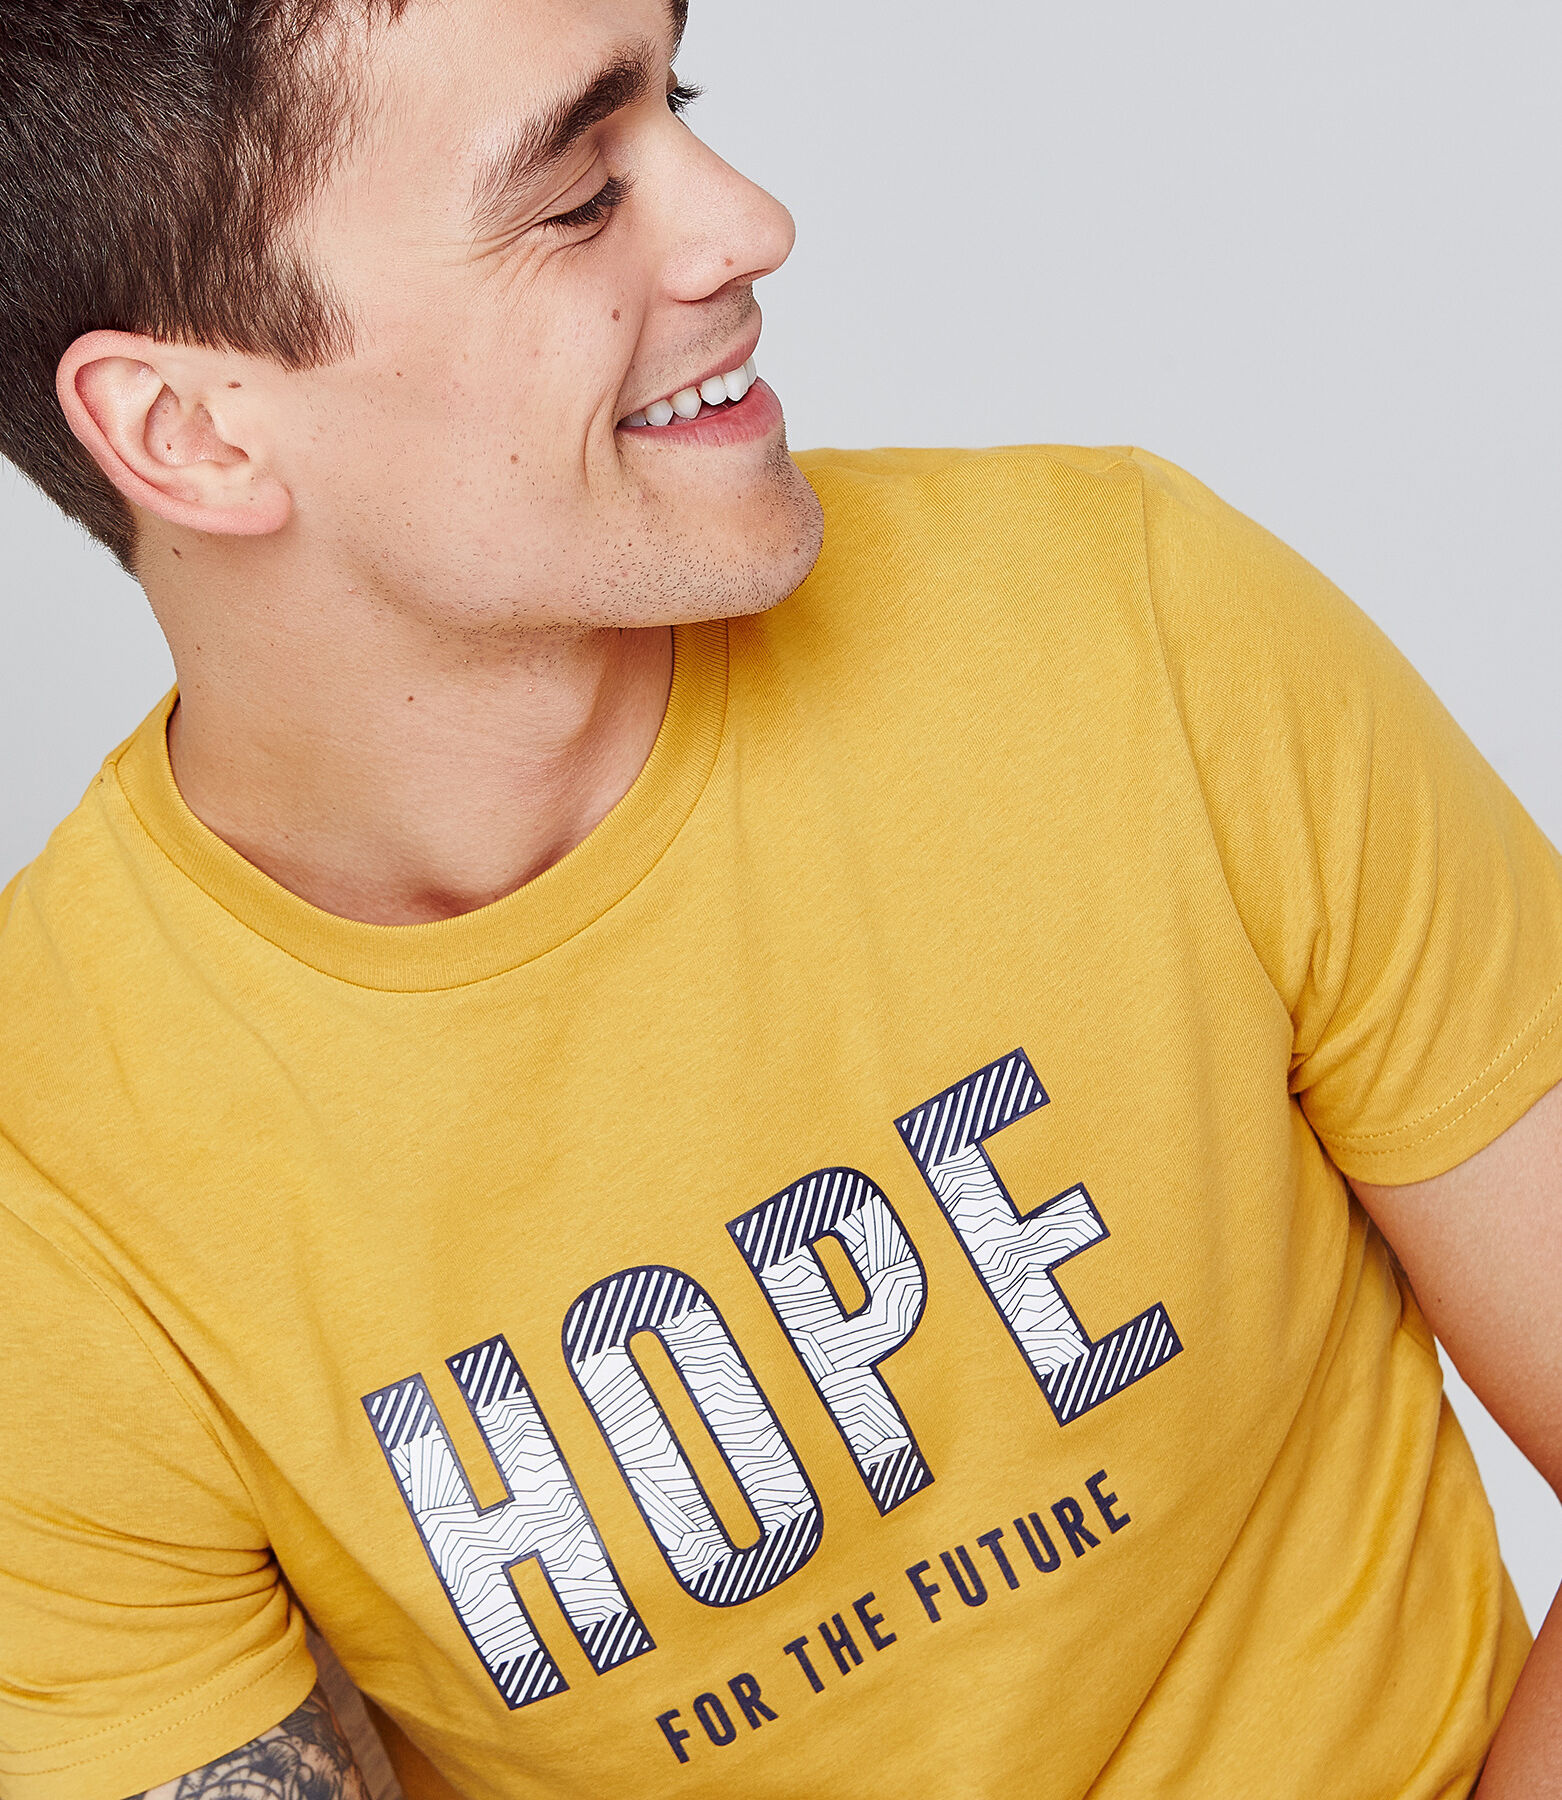 T-shirt met opschrift 'HOPE FOR THE FUTURE'